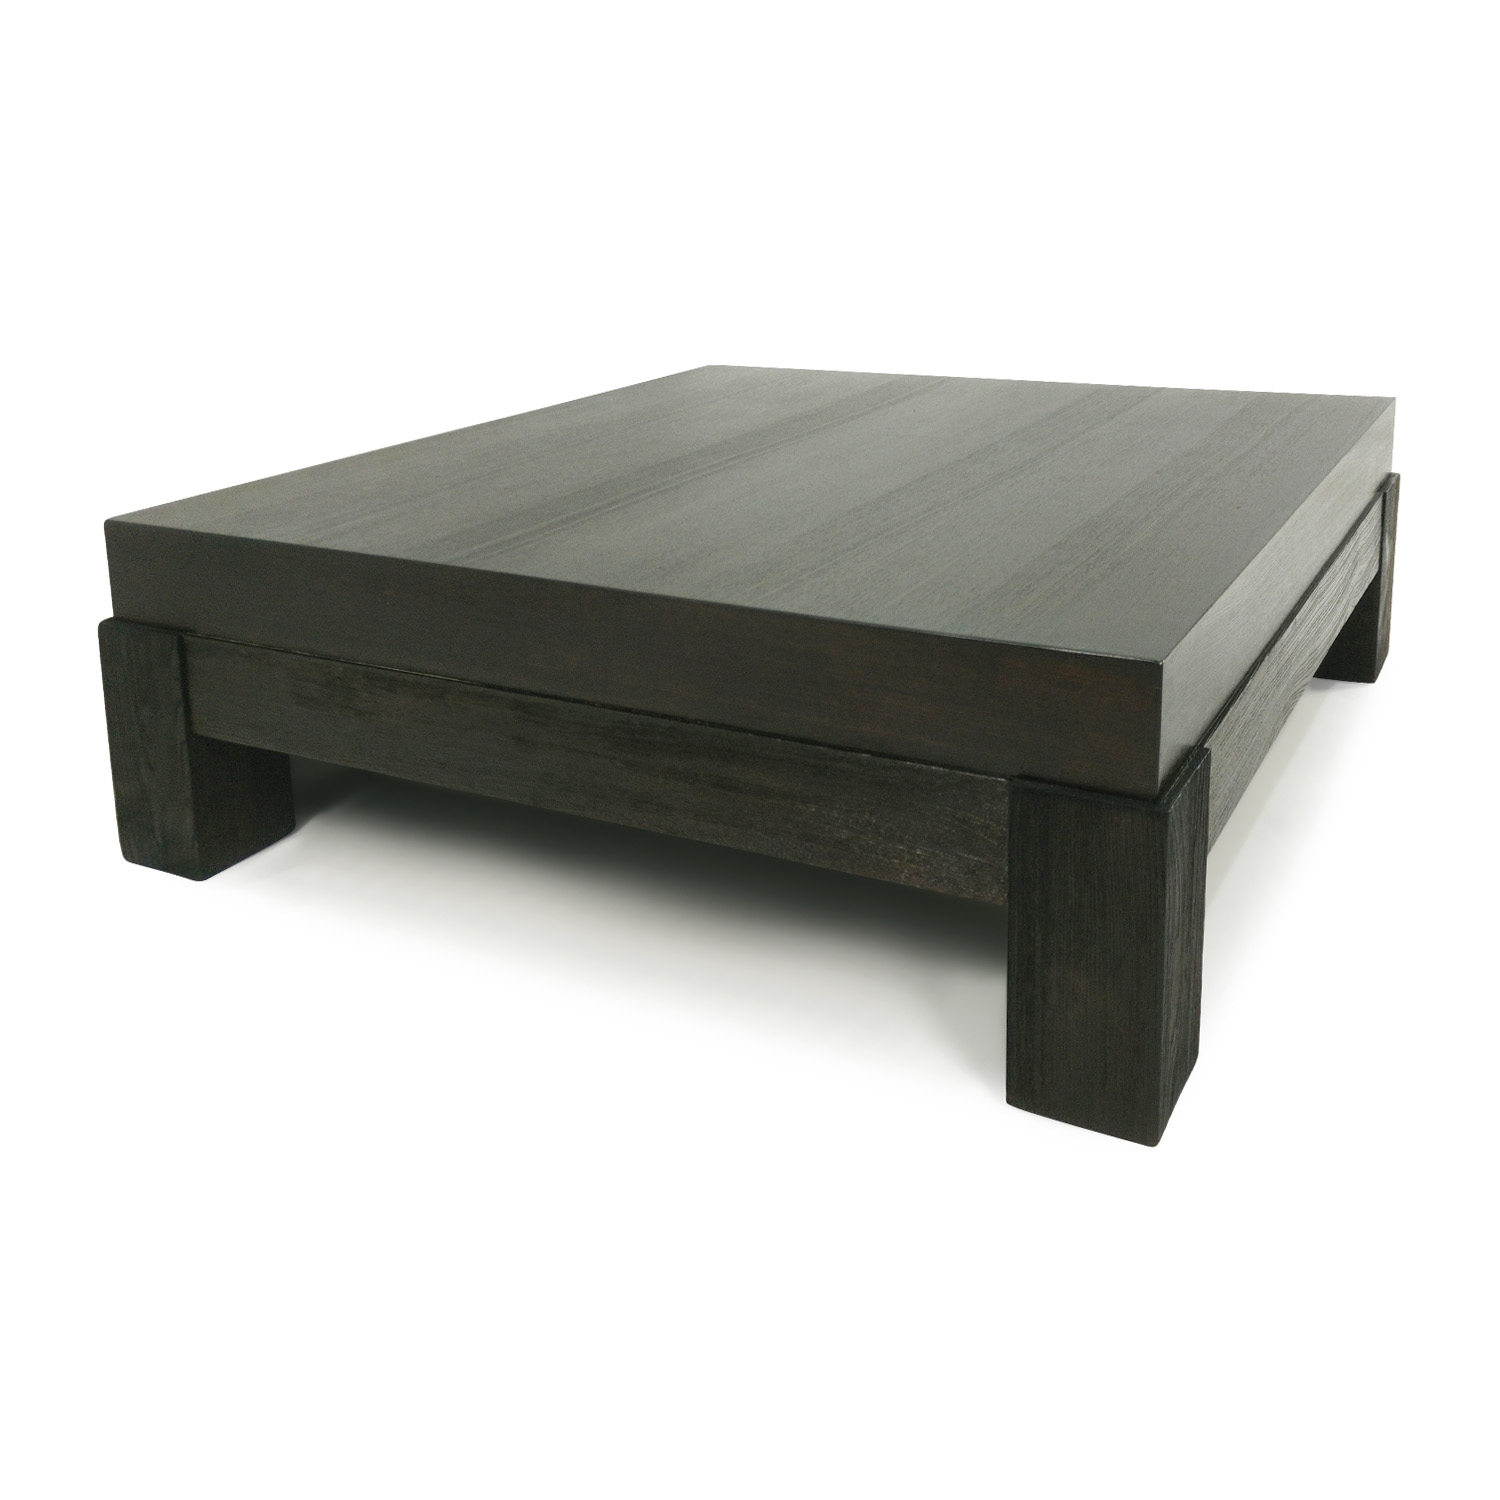 80 Off Crate And Barrel Crate Barrel Square Coffee Table Tables